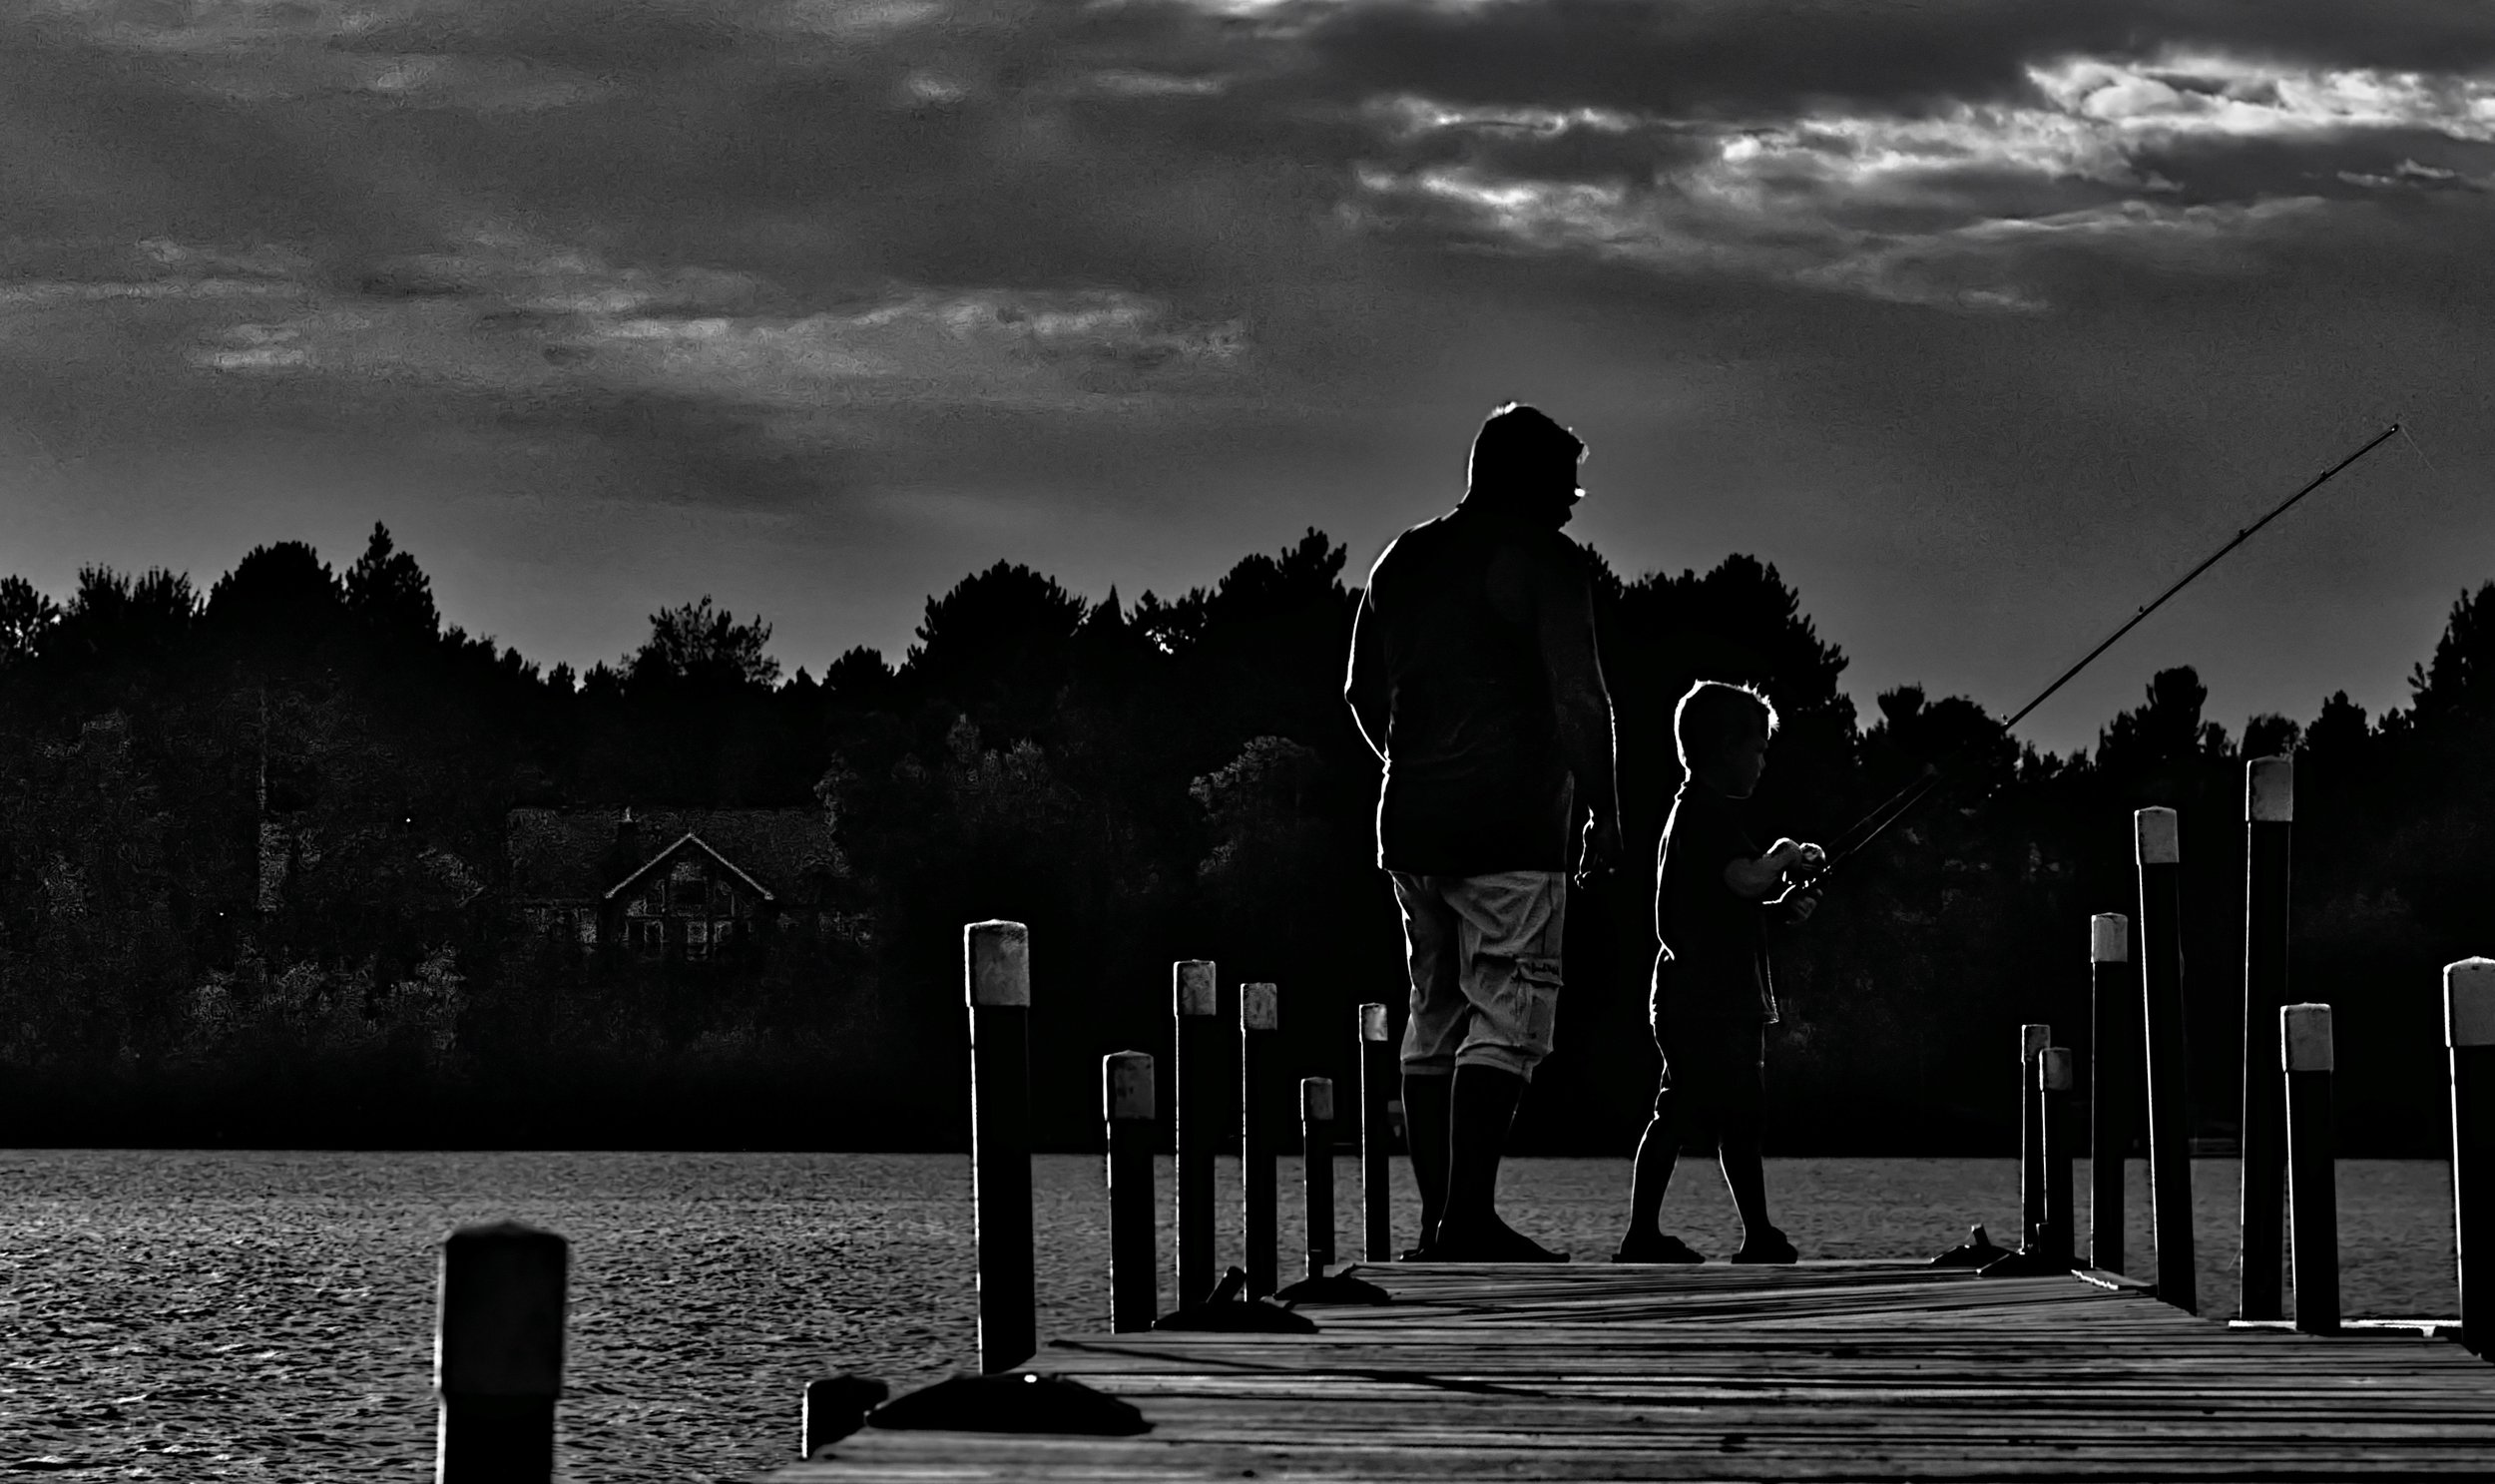 It's not about catching fish… - …it's about catching memories & time spent with loved ones.